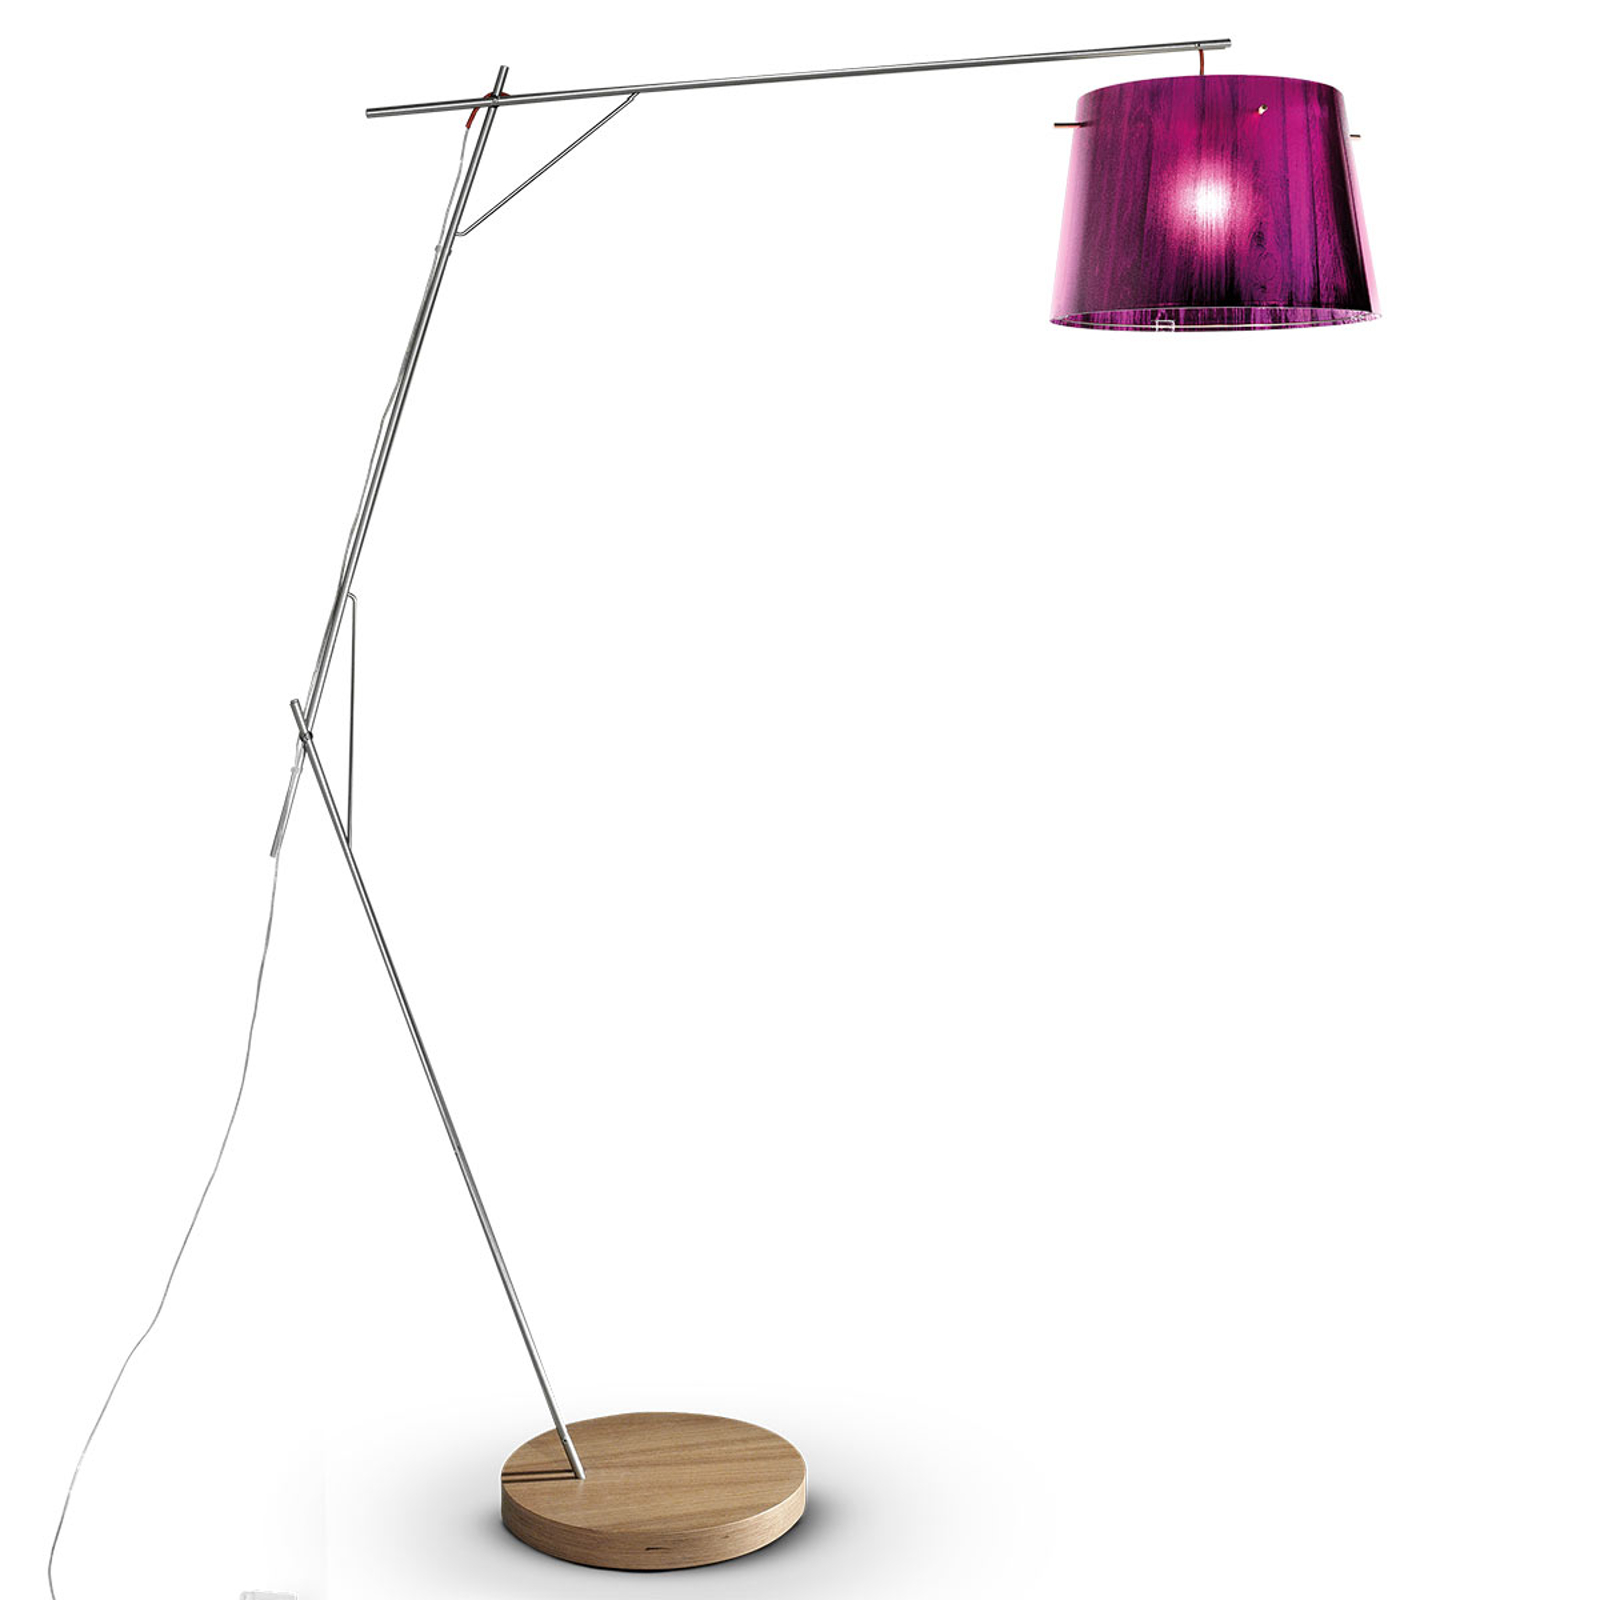 Slamp Woody - design-vloerlamp, purper